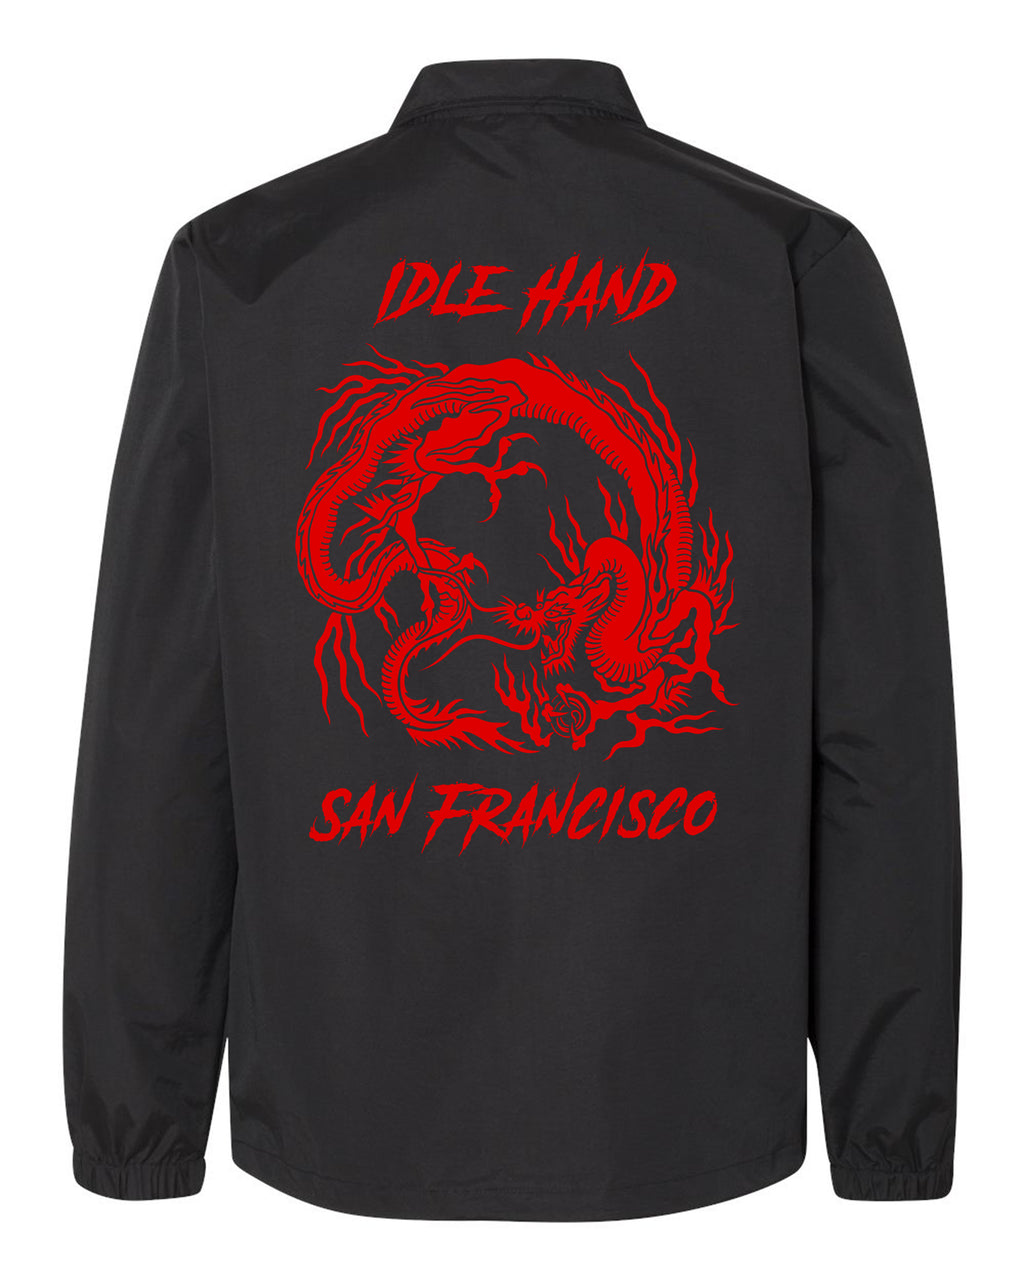 Back of Idle Hand Coaches jacket with Red Dragon design and the words Idle Hand at the top, San Francisco at the bottom.